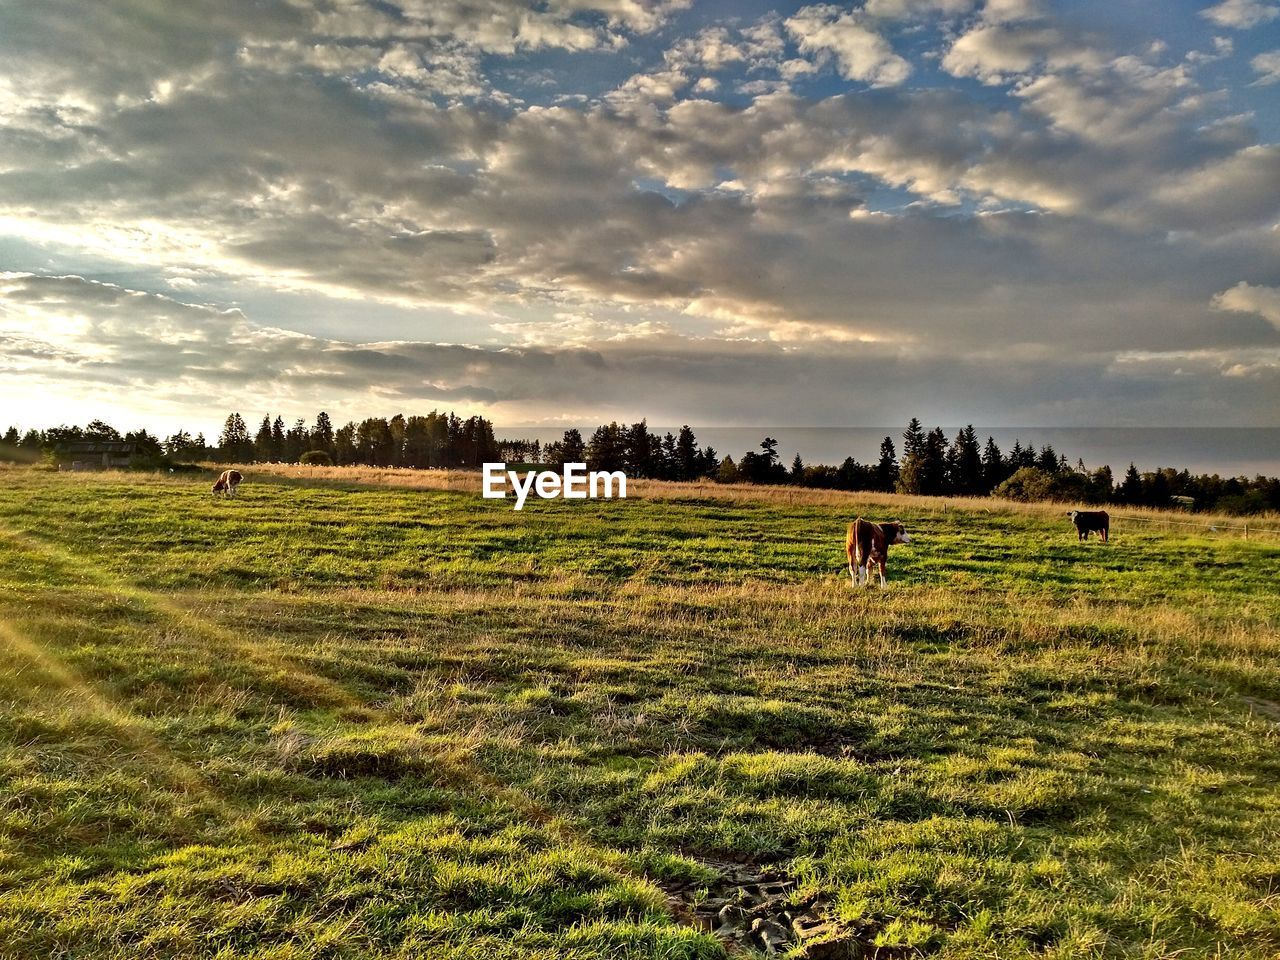 animal themes, domestic animals, field, grass, mammal, landscape, horse, sky, cloud - sky, nature, tree, grazing, tranquility, livestock, cow, beauty in nature, scenics, tranquil scene, large group of animals, no people, outdoors, day, growth, sunset, rural scene, pets